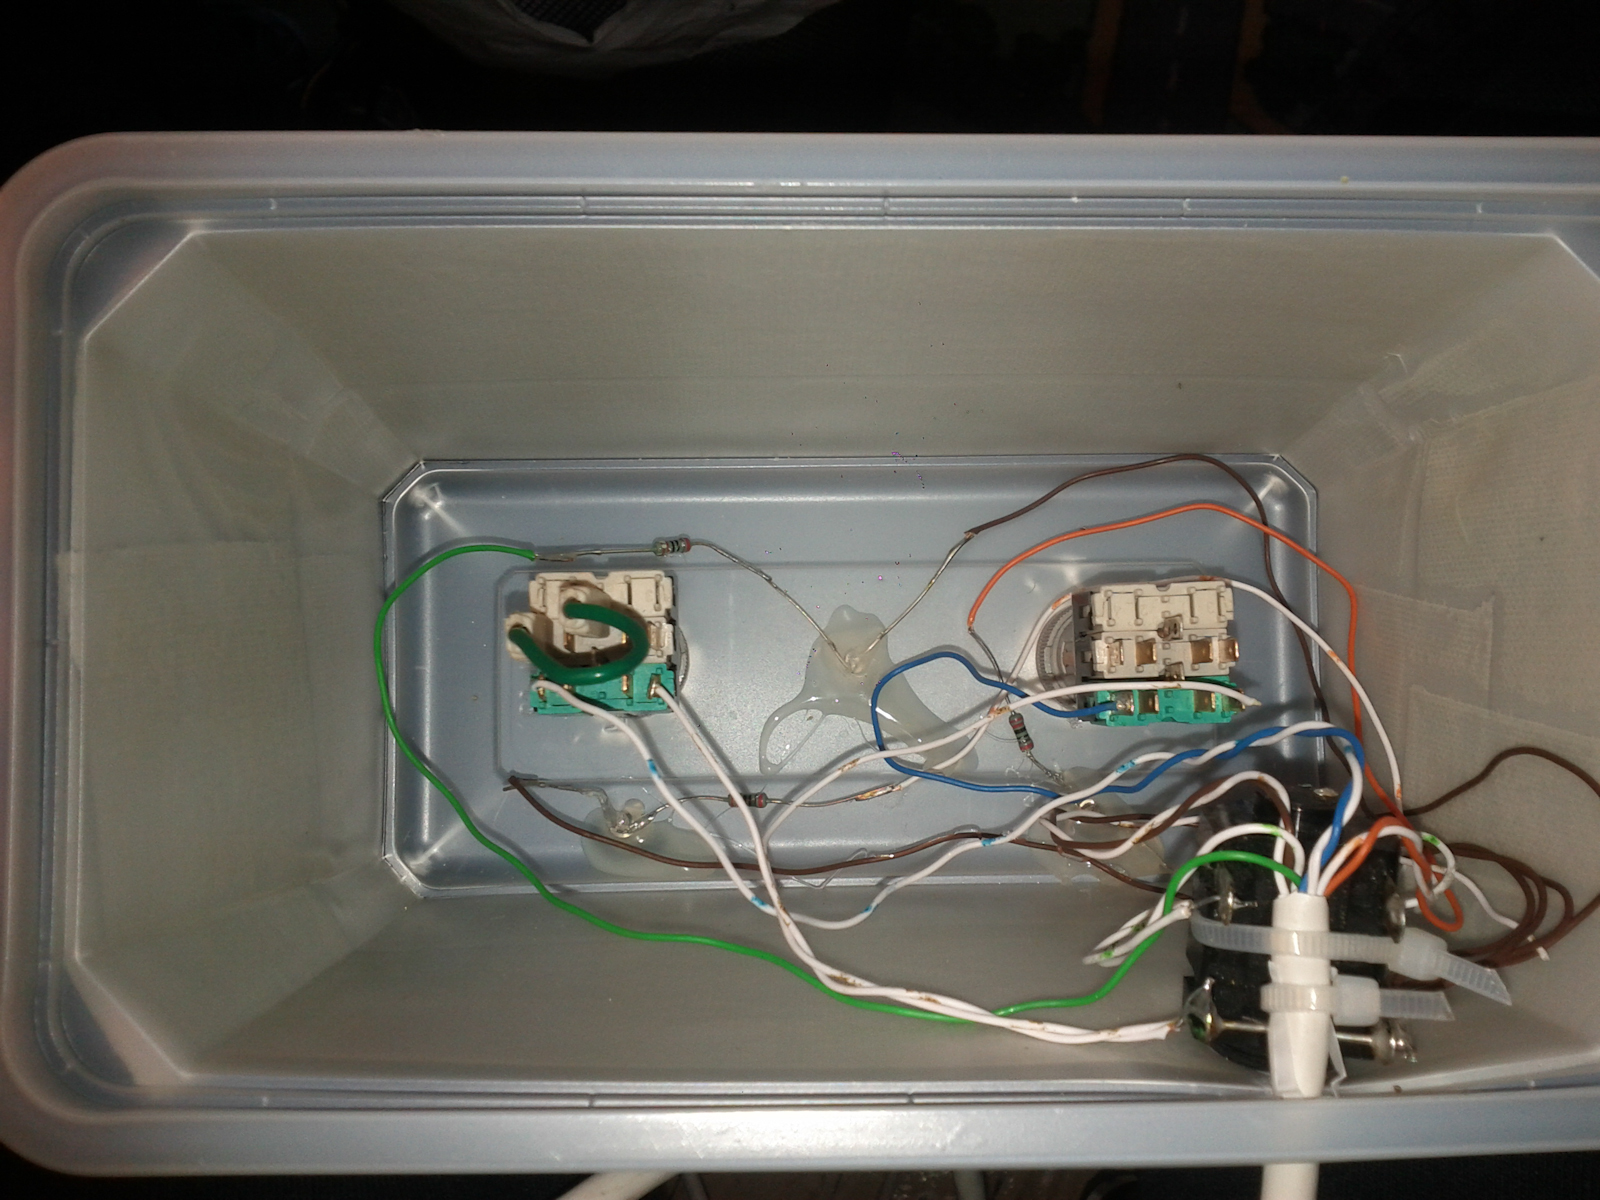 Finished soldering inside the box